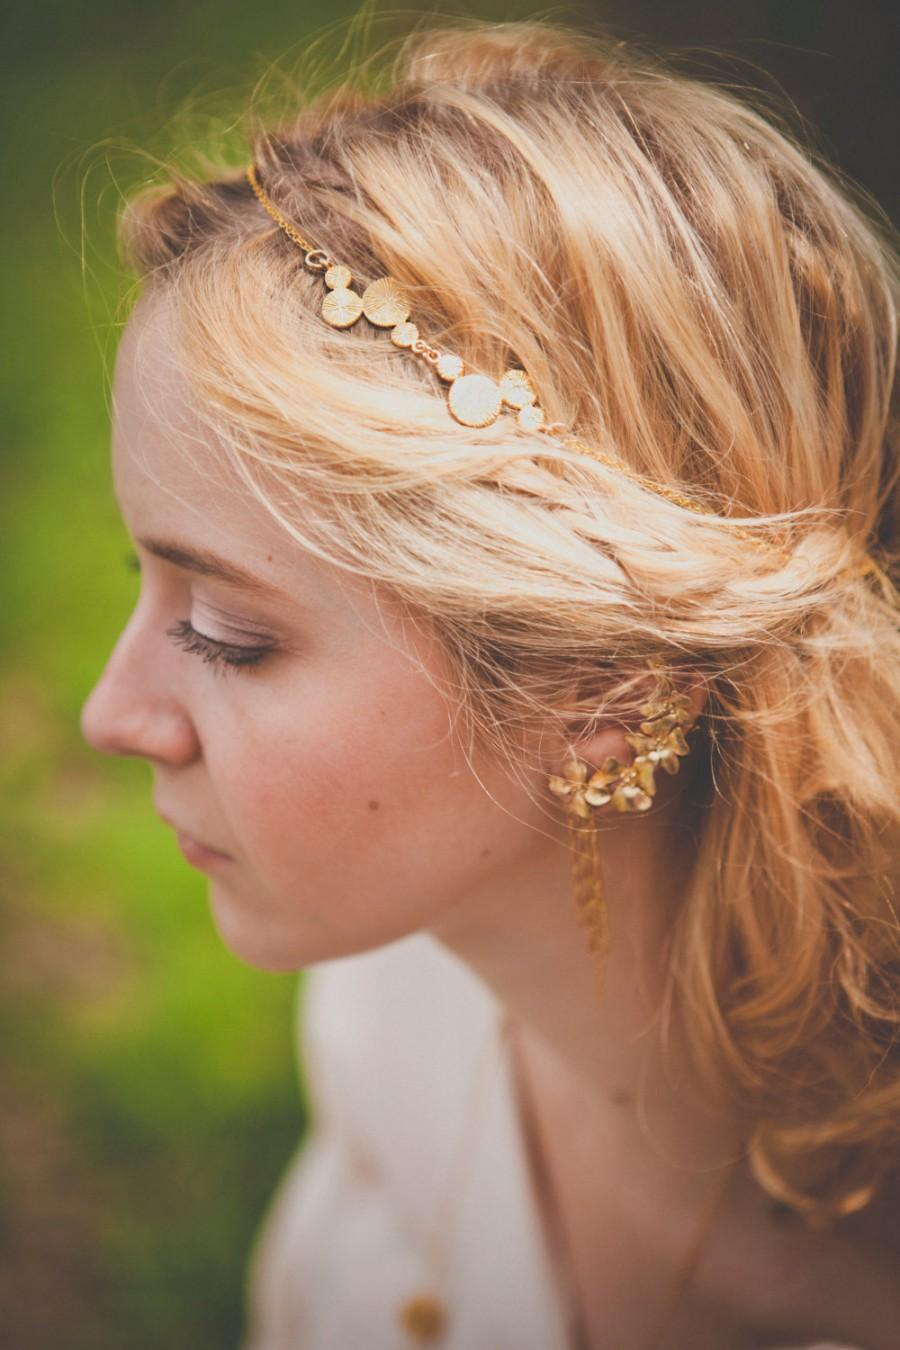 Свадьба - Cassiope Headpiece - Gold plated 18k chain bridal headband - art nouveau 20s gatsby boho crown tudor victorian reign tiara - MADE TO MEASURE